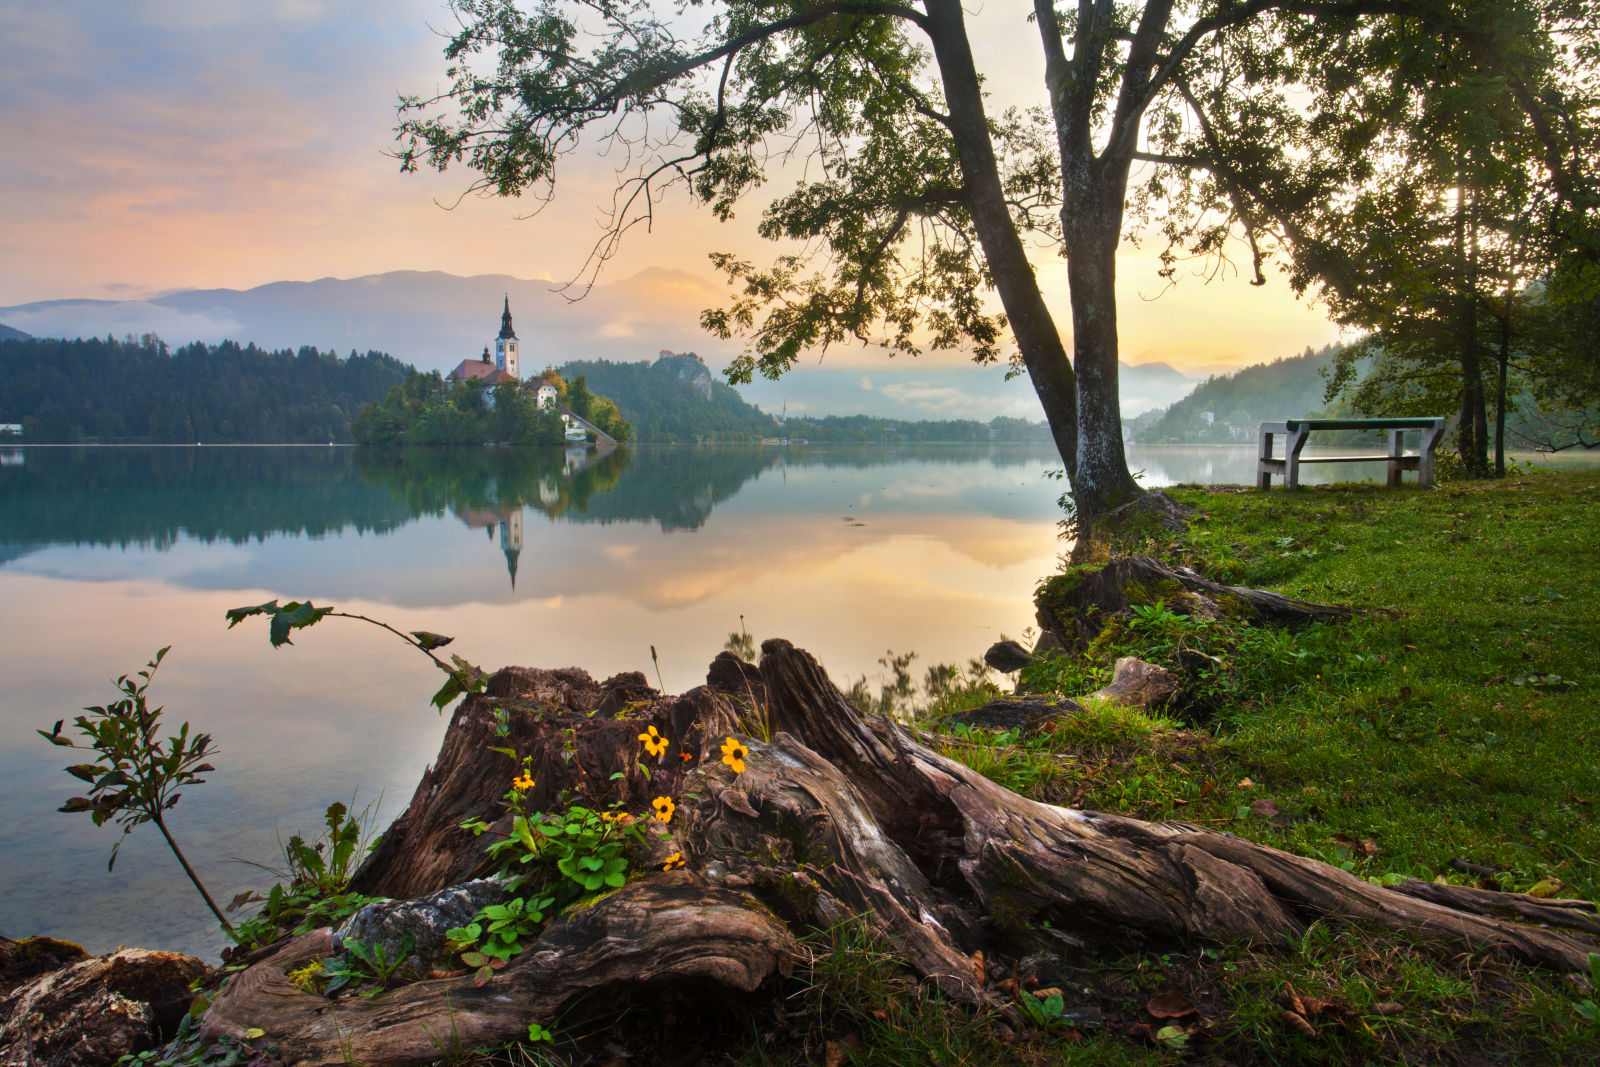 Lake Bled and its island in Slovenia